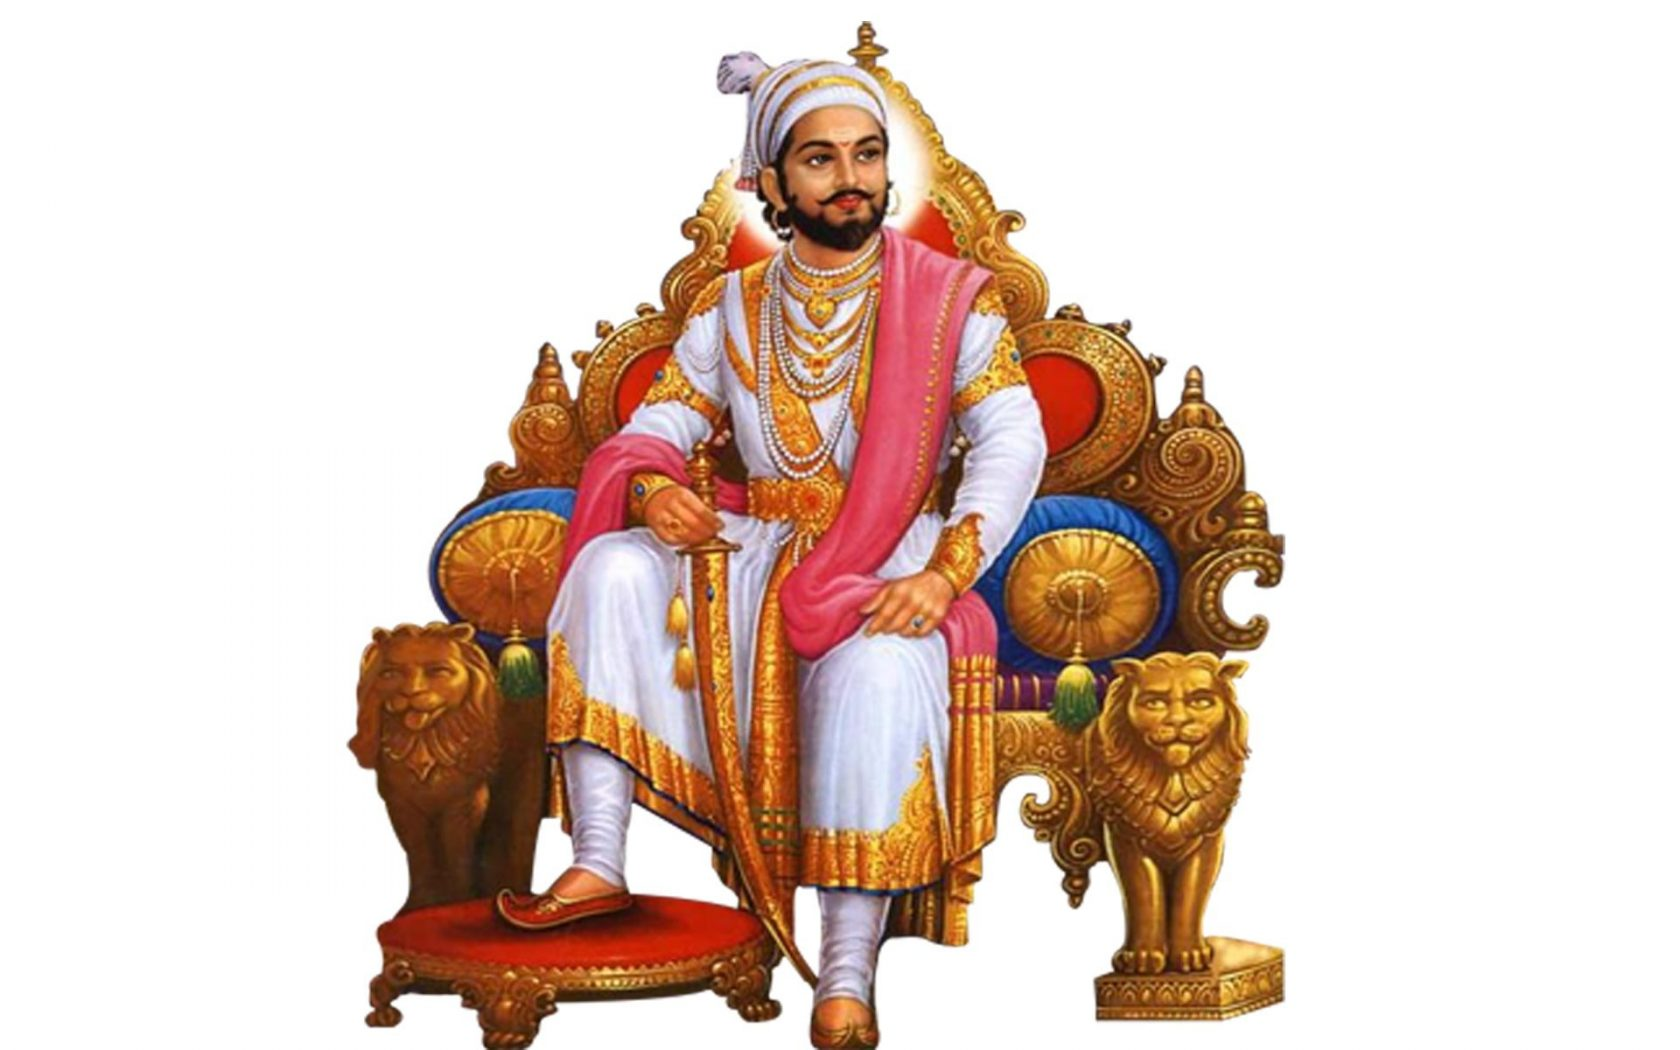 Islamic 3d Wallpapers For Pc Free Download Shivaji Maharaj Wallpapers For Desktop Hd Wallpapers